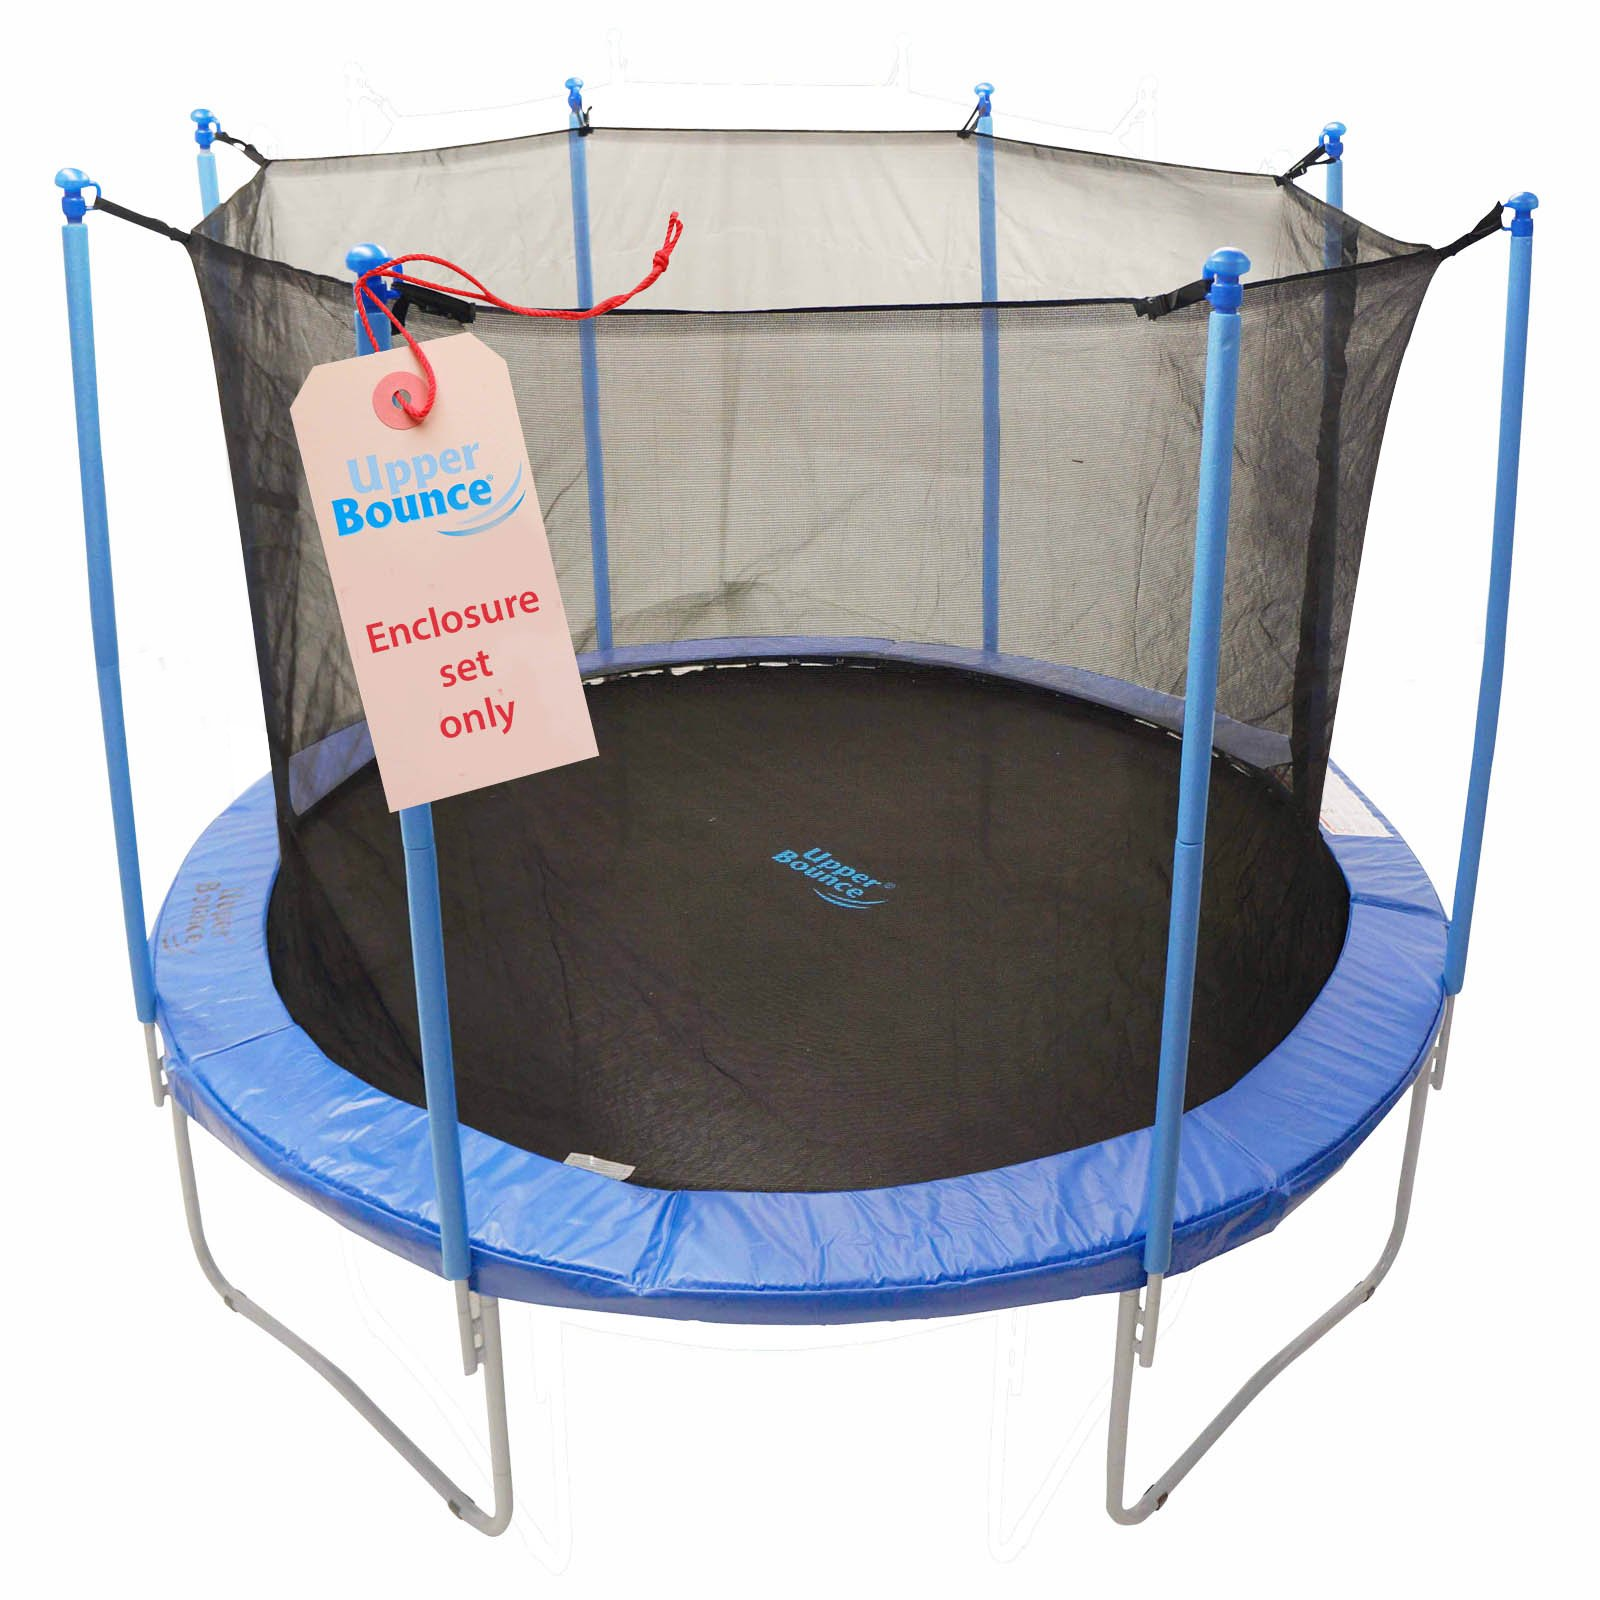 Upper Bounce 8 Pole Trampoline Enclosure Set to fit 14 FT. Trampoline Frames with set of 4 or 8 W-Shaped Legs (Trampoline Not Included)